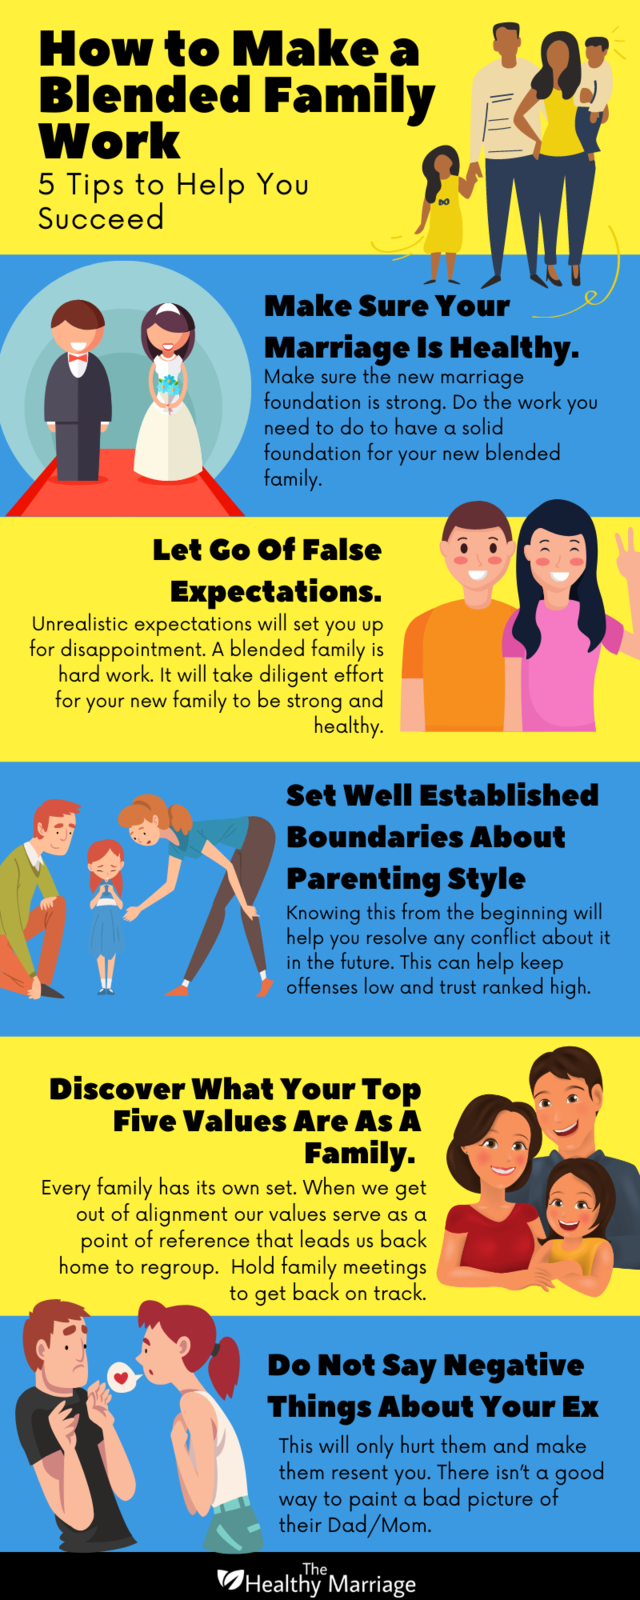 5 Tips To Make A Blended Family Work